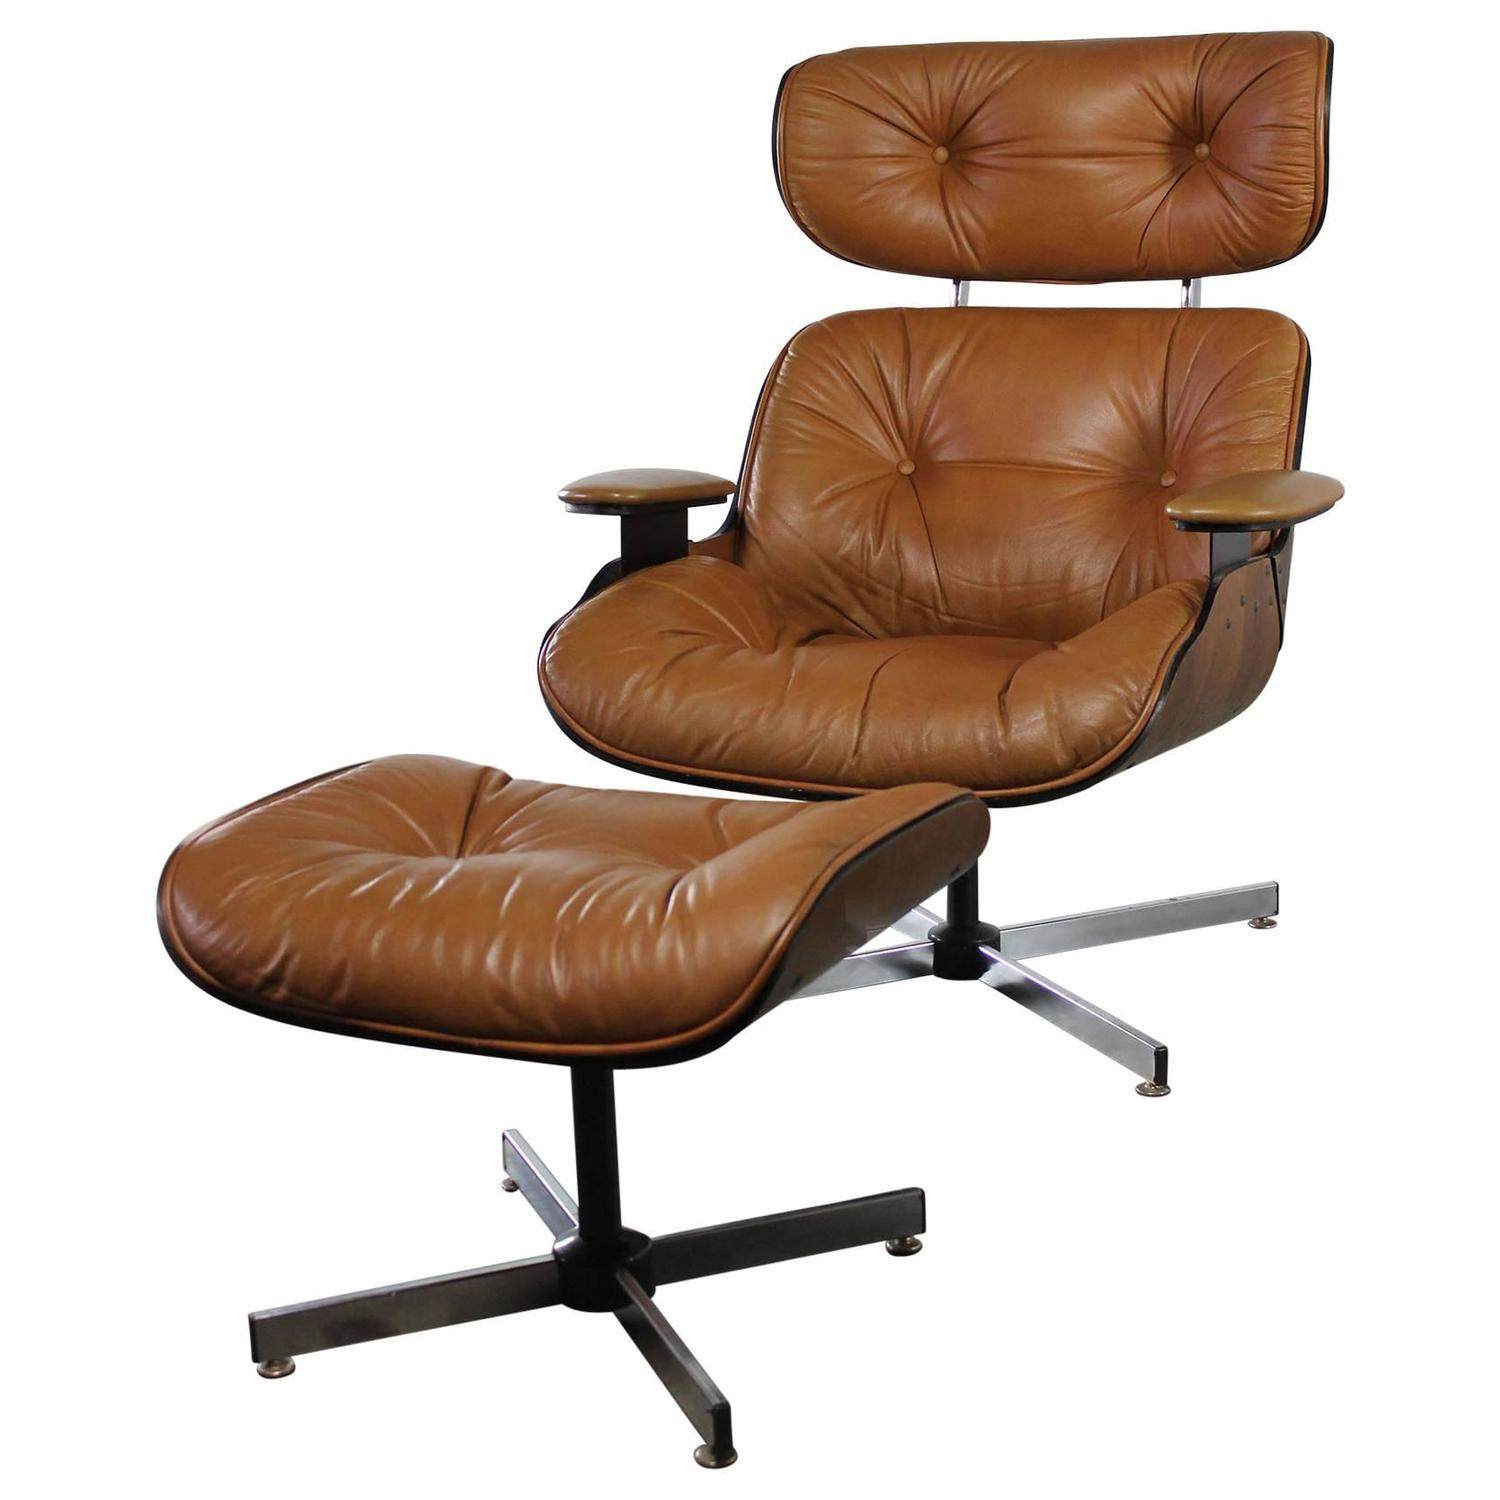 Beautiful Mid Century Modern Plycraft Eames Style Lounge Chair And Ottoman At 1stdibs